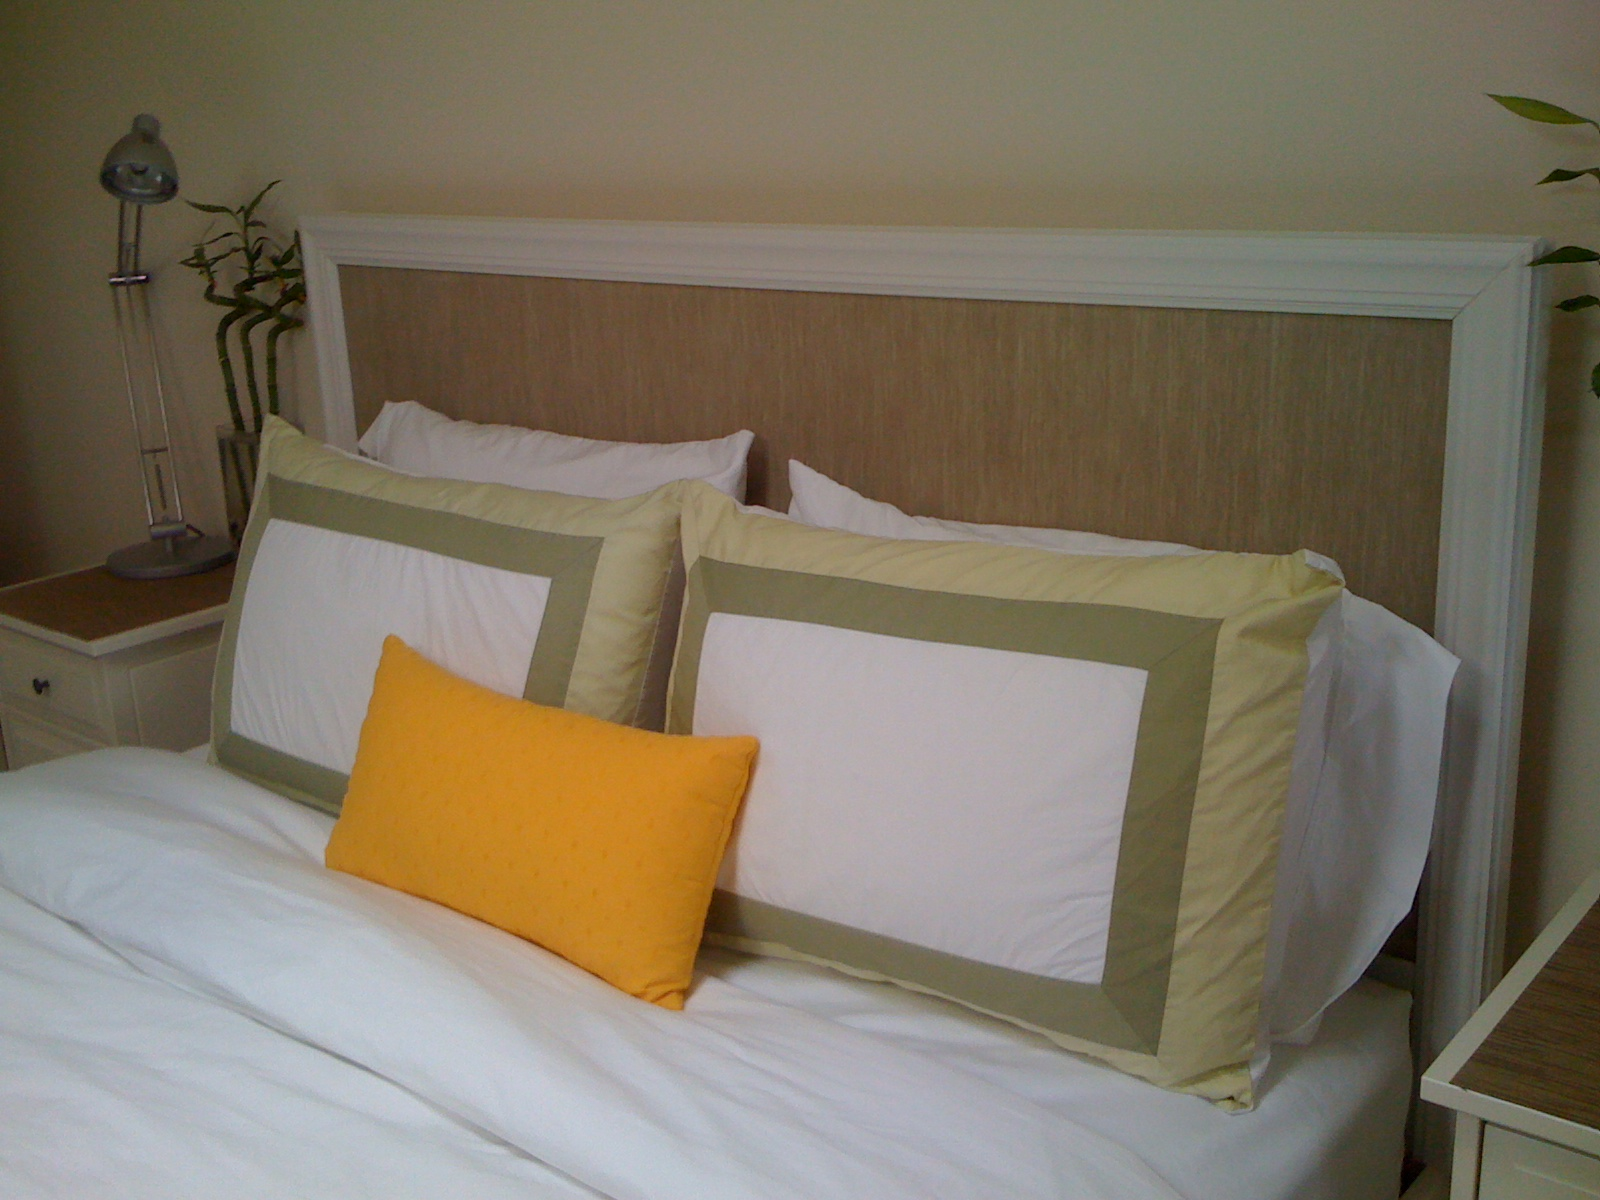 Headboards Ikea | Ikea Headboards Double | Single Bed Headboards Ikea